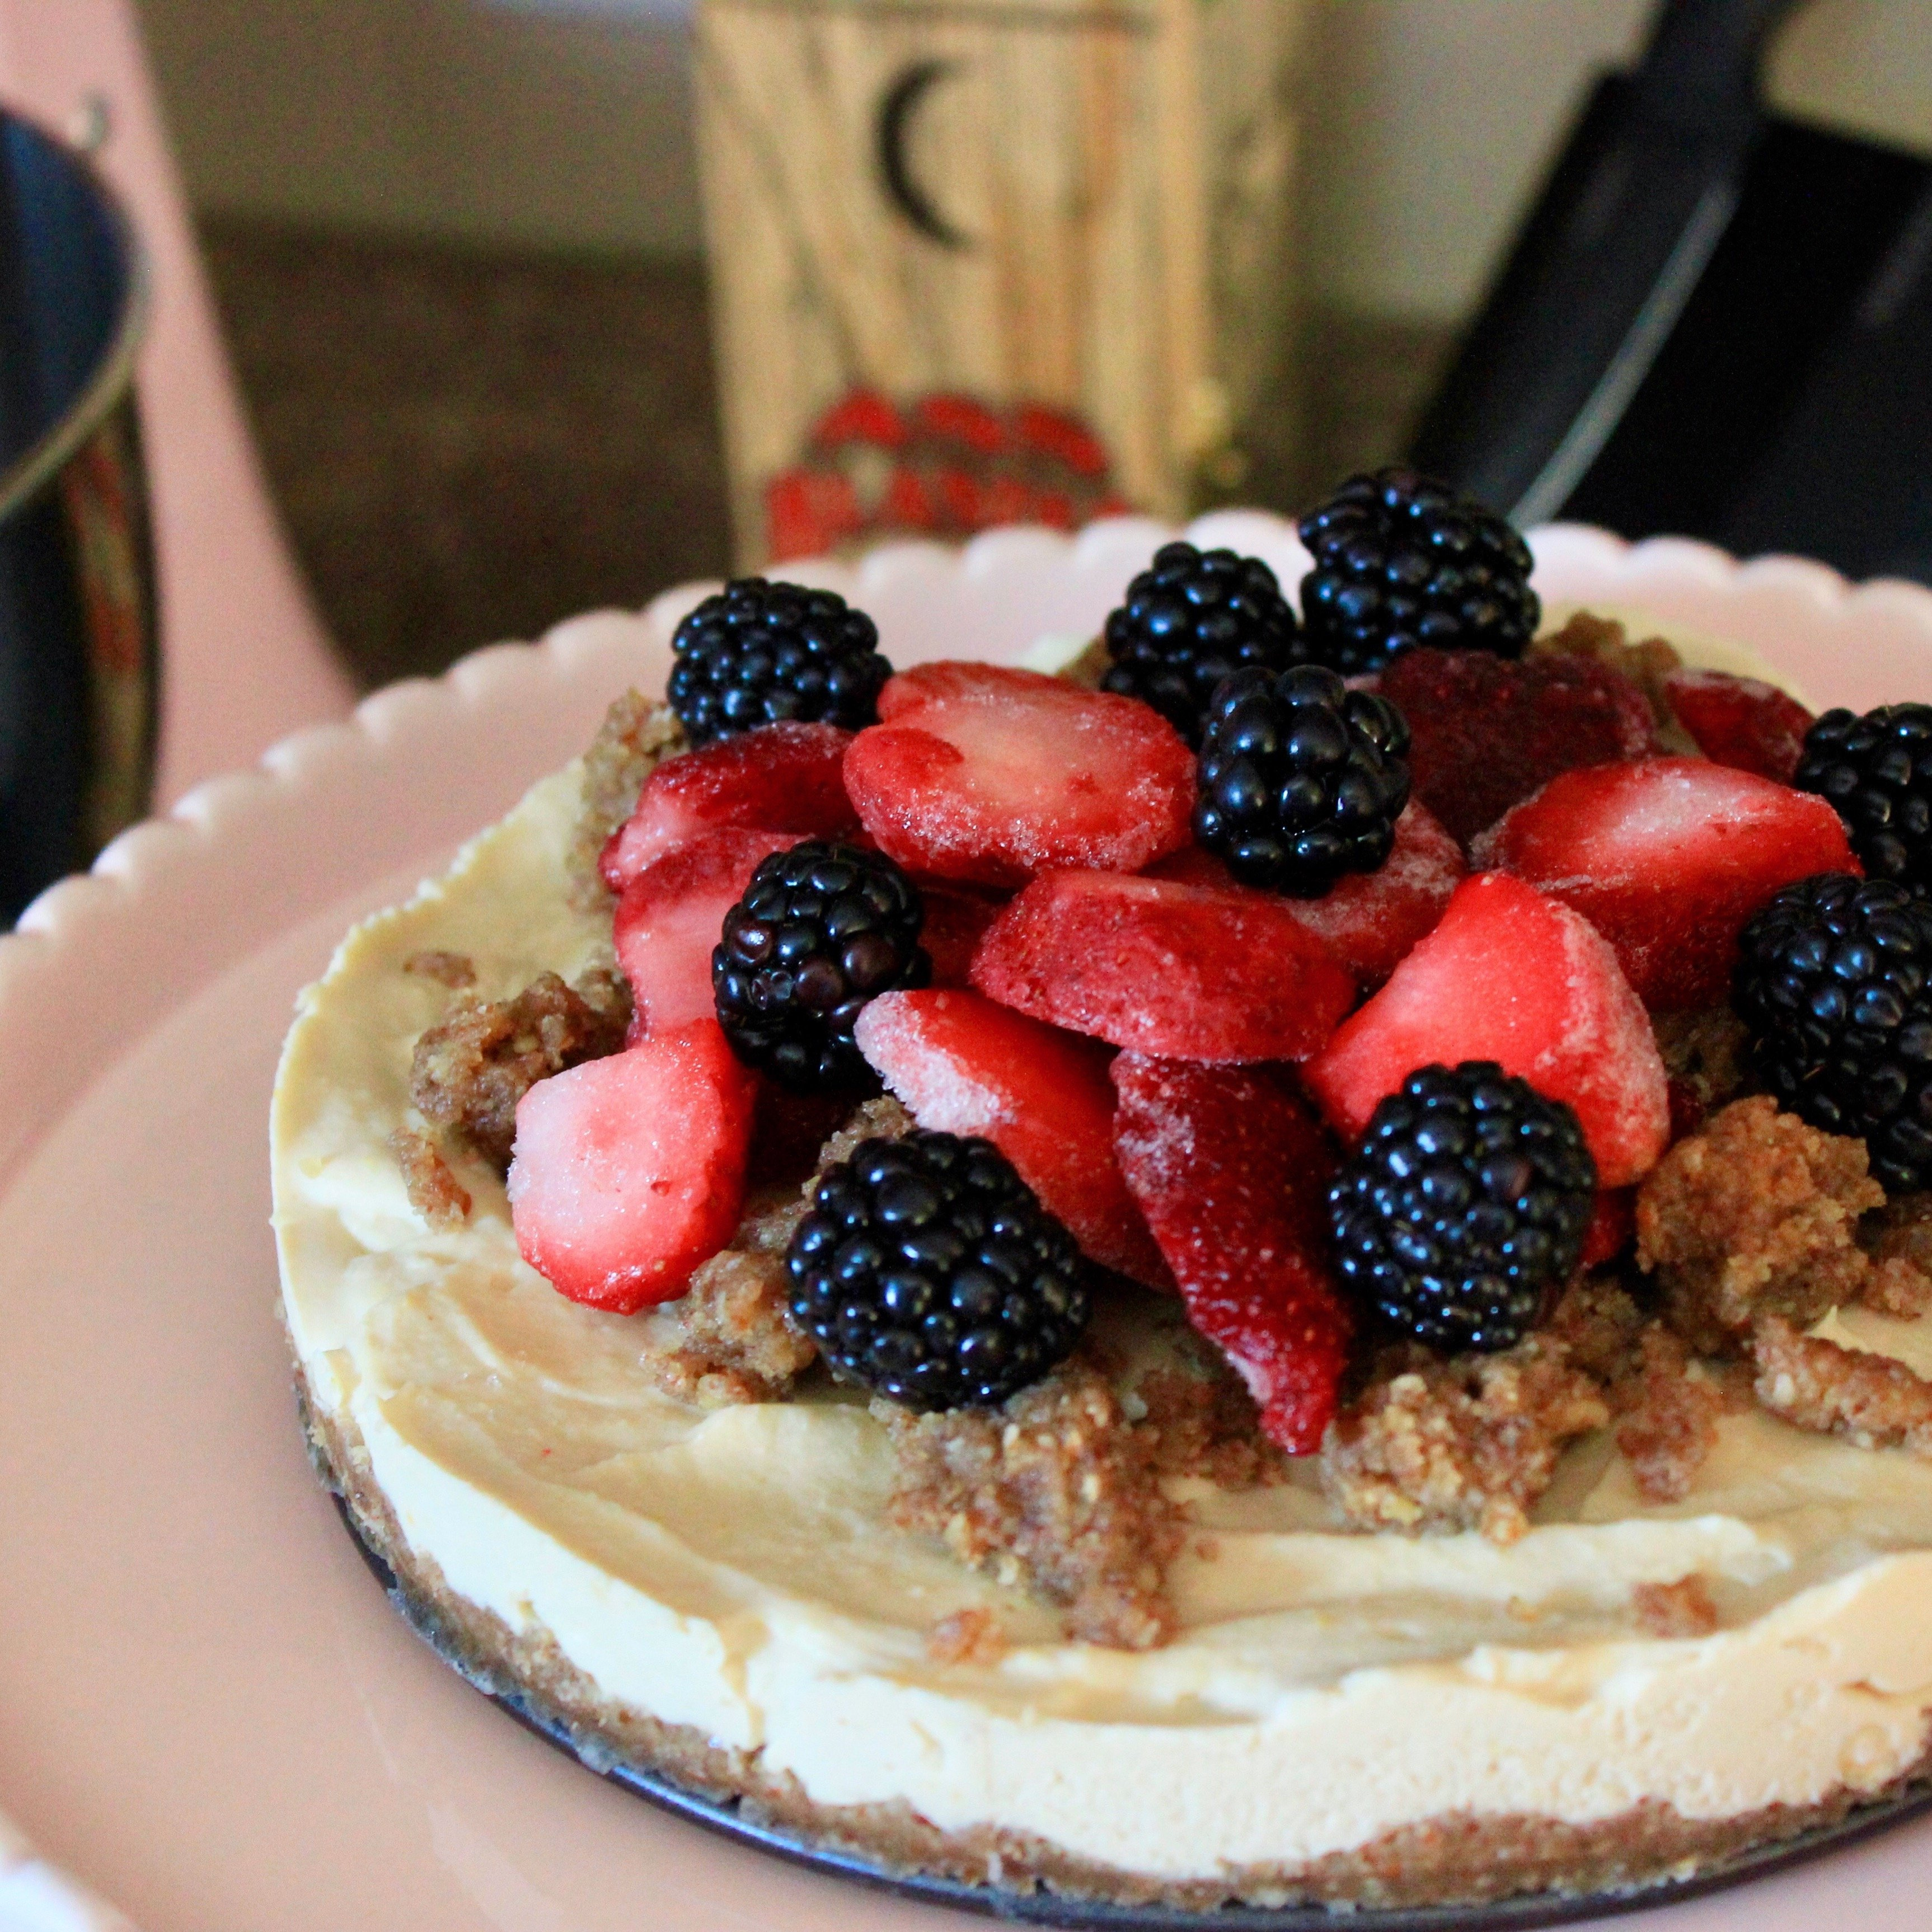 Granola-cereal-urban hippie-Vegan Meyer Lemon Cheesecake with Pecan & Date Crust with Berry Topping-recipe